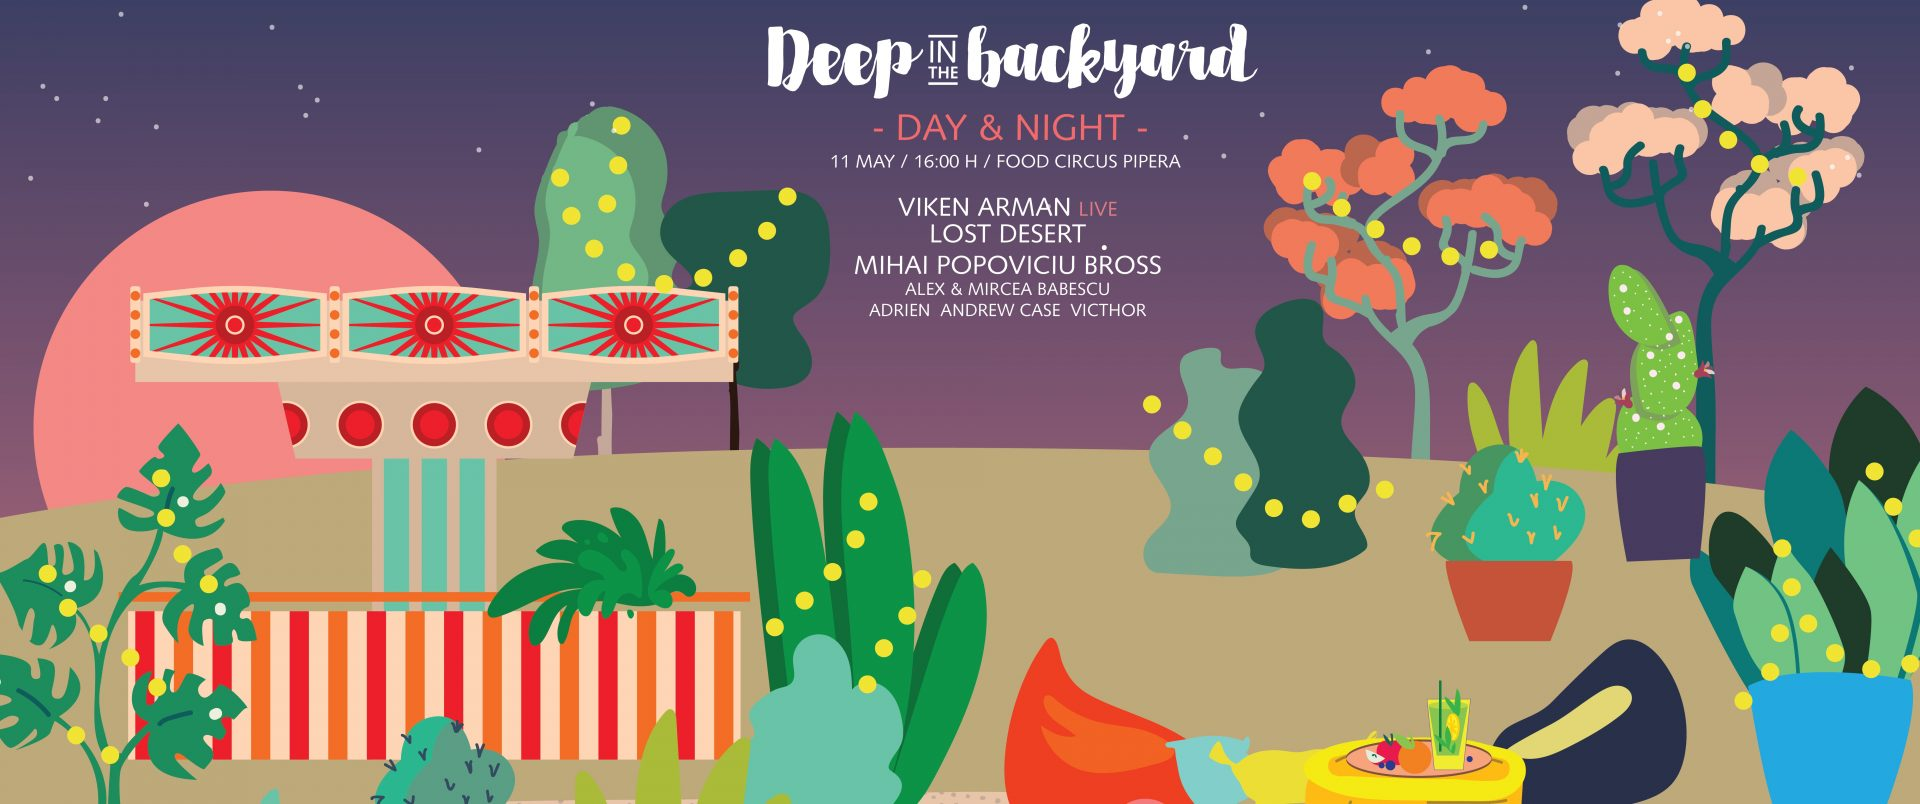 Deep in the Backyard with Viken Arman (Live), Lost Desert, Mihai Popoviciu, Bross & more